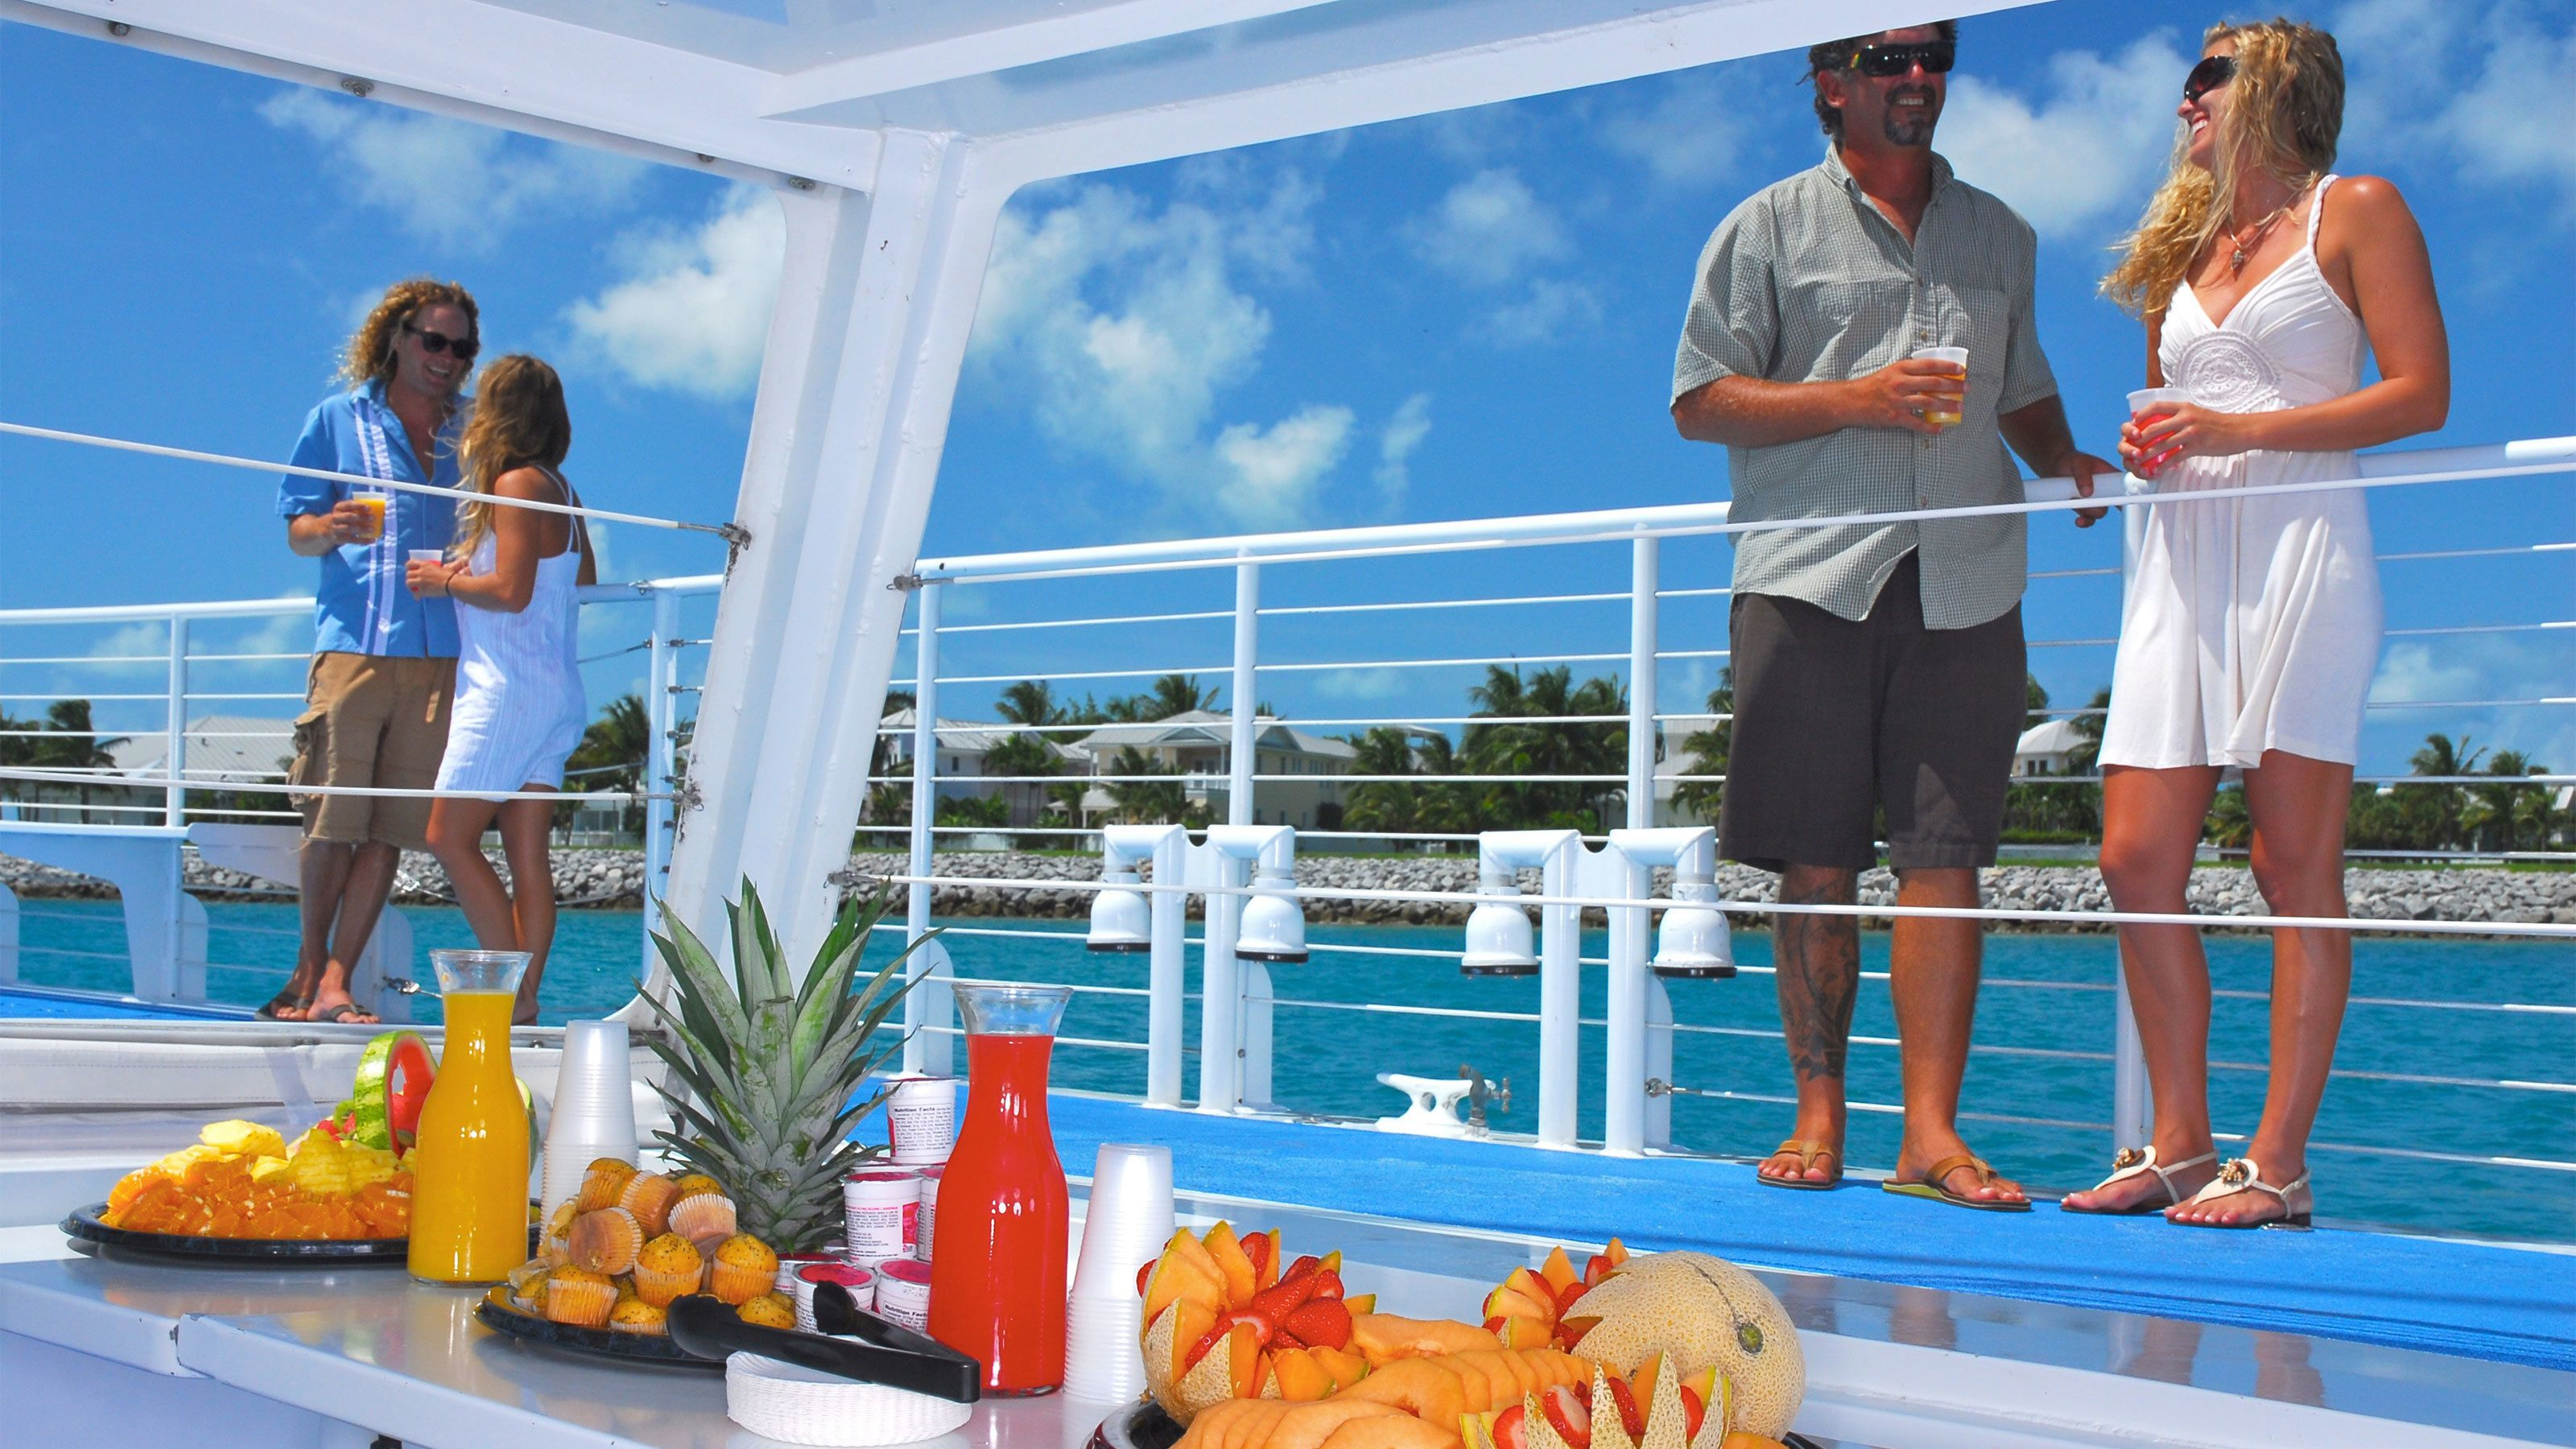 Fruits and pastries available on the boat in Key West